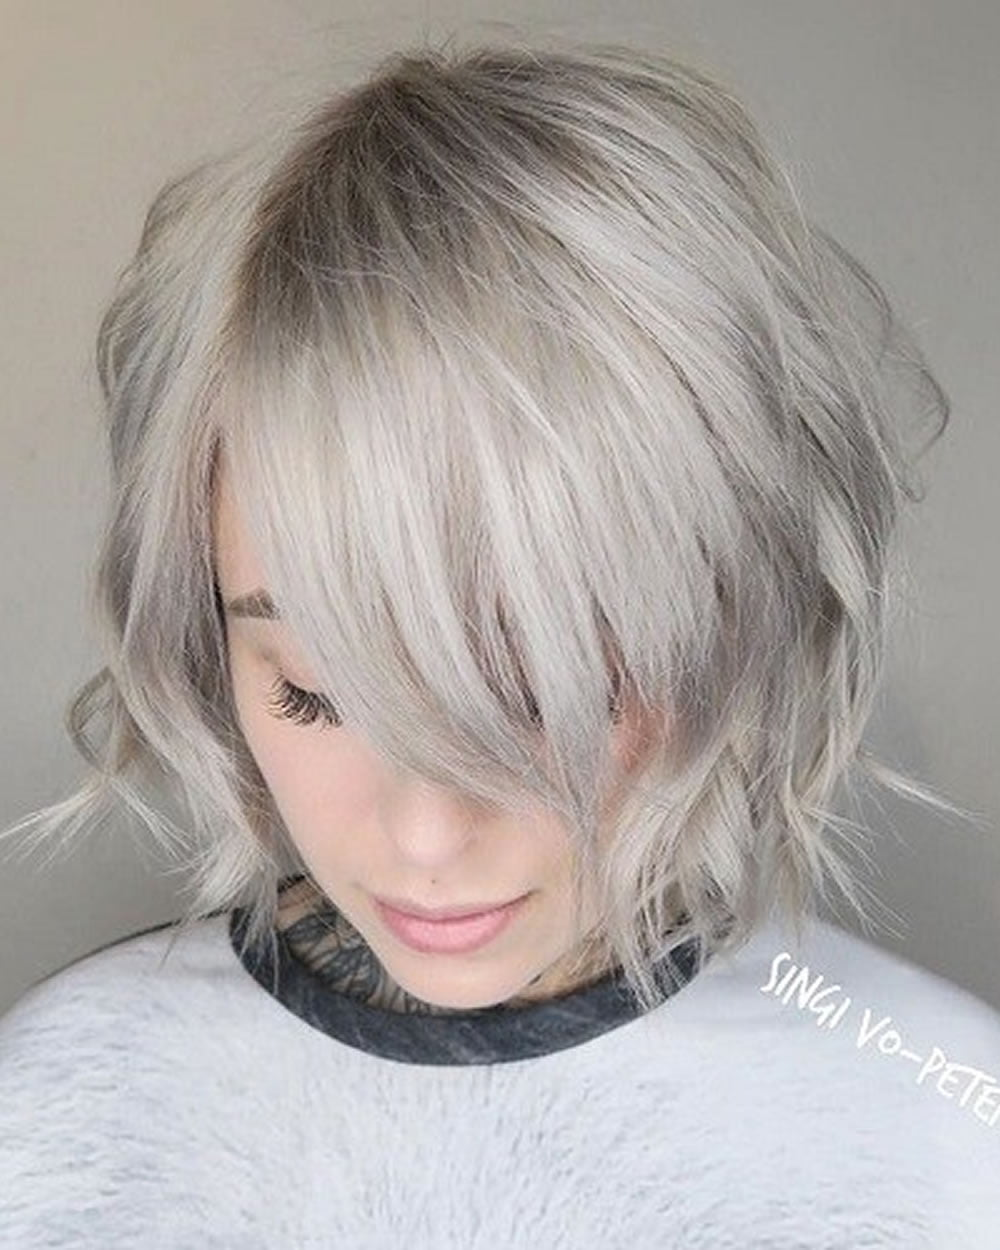 Overwhelming Short Choppy Haircuts for 2018-2019 (Bob+Pixie Hair) - Page 2 - HAIRSTYLES